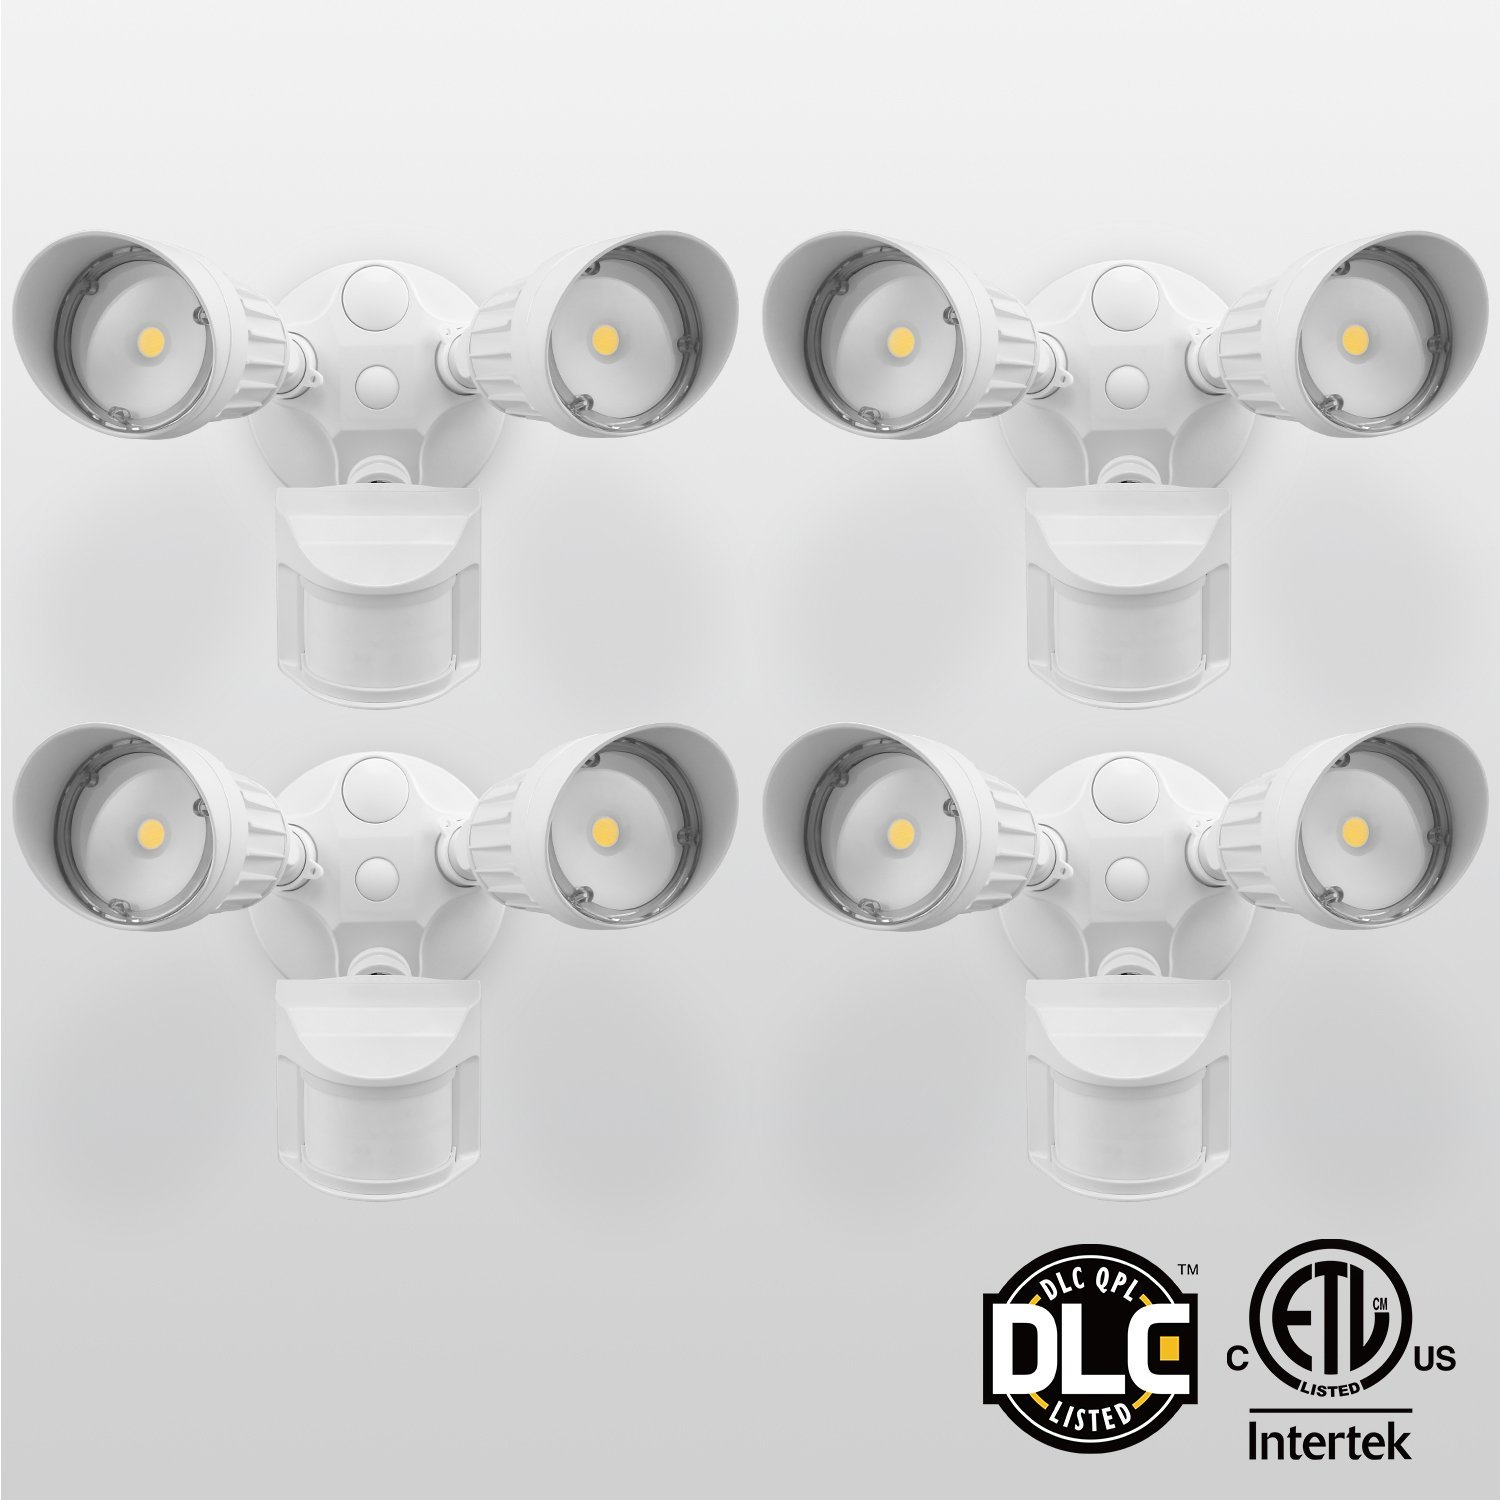 TORCHSTAR 4 Pack LED Outdoor Security Light, 20W Outside Security Lights, 1800lm Flood Light for Porch, Stairs, 5000K Daylight, White